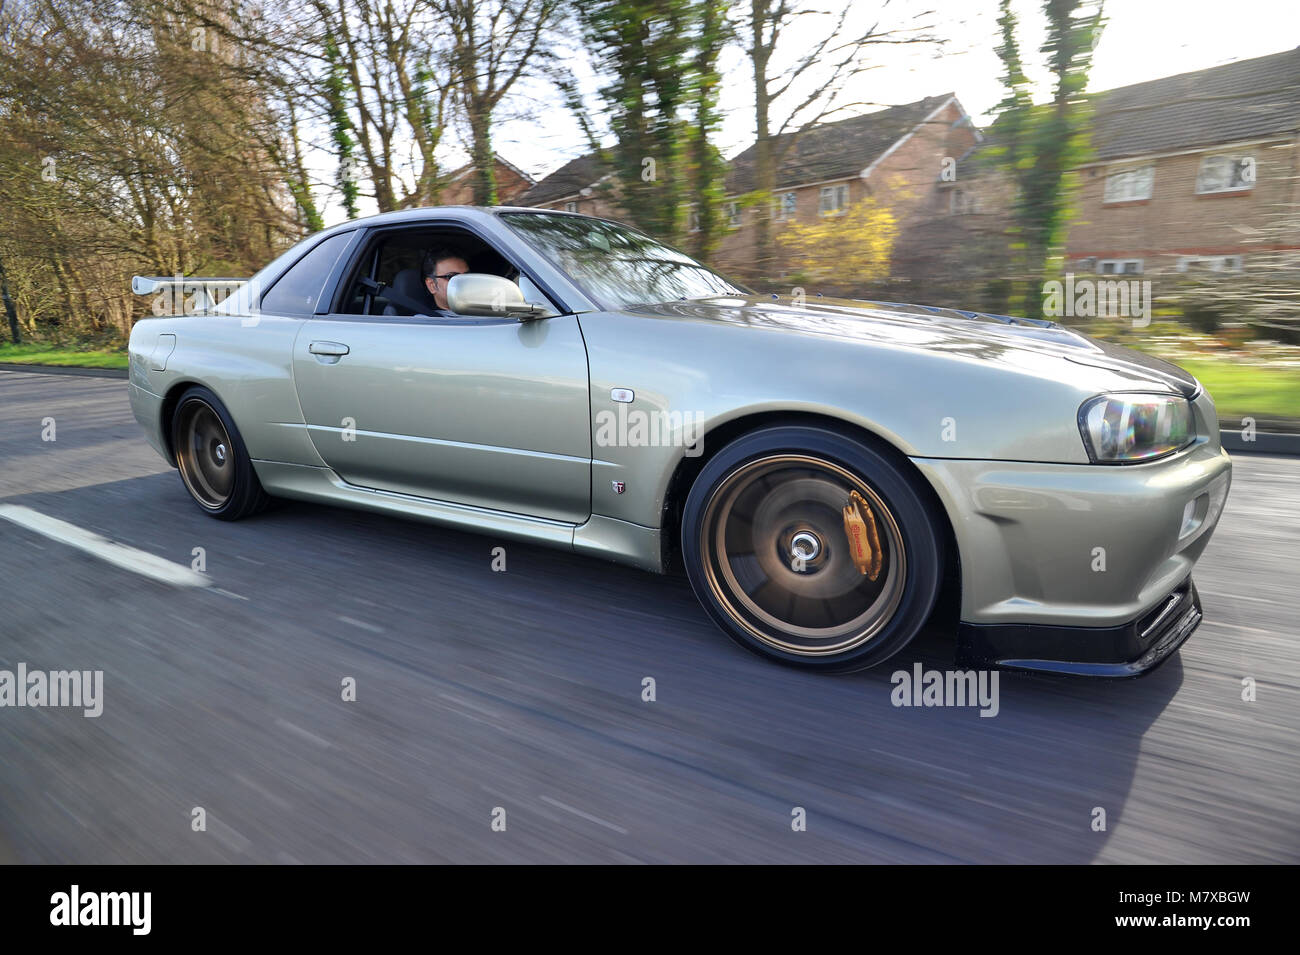 Nissan Skyline R34 Skyline Modified Japanese Super Car   Stock Image